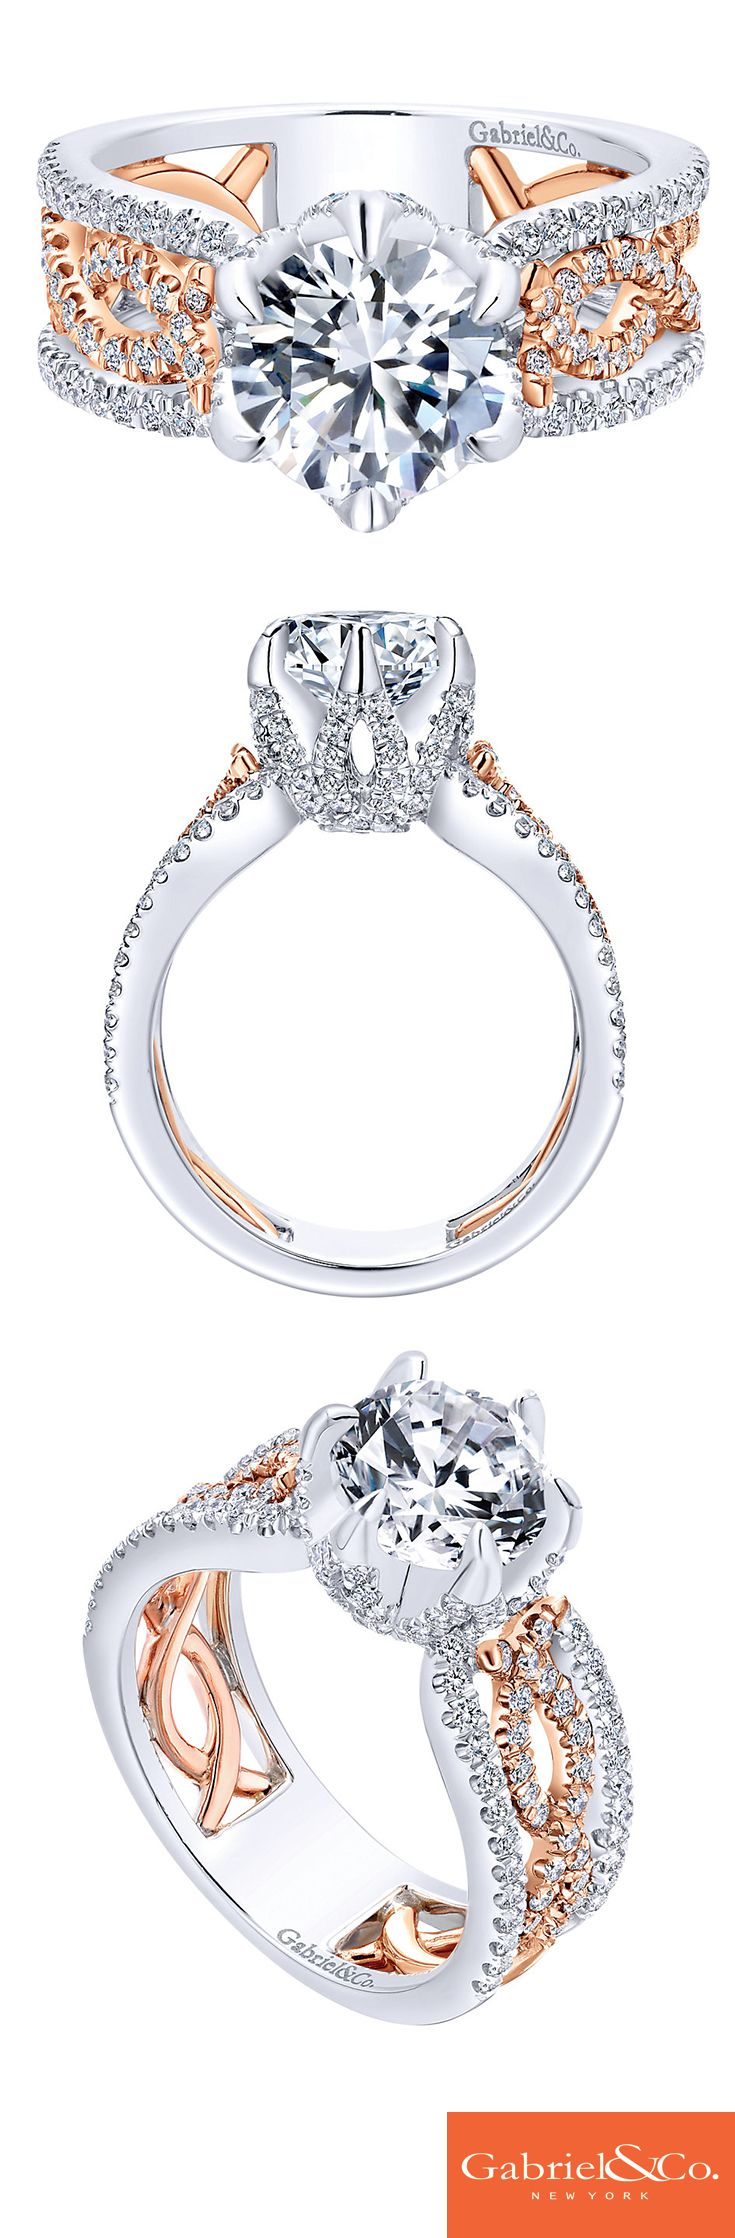 A Queen deserves a regal and elegant engagement ring. This 18k white and rose gold contemporary diamond criss cross engagement ring will make any bride-to-be feel like royalty. Find this and more at Kenny G & Company Fine Jewelers, www.kennygandcompanyfinejewelers.com, #kennygandco #gabrielandco